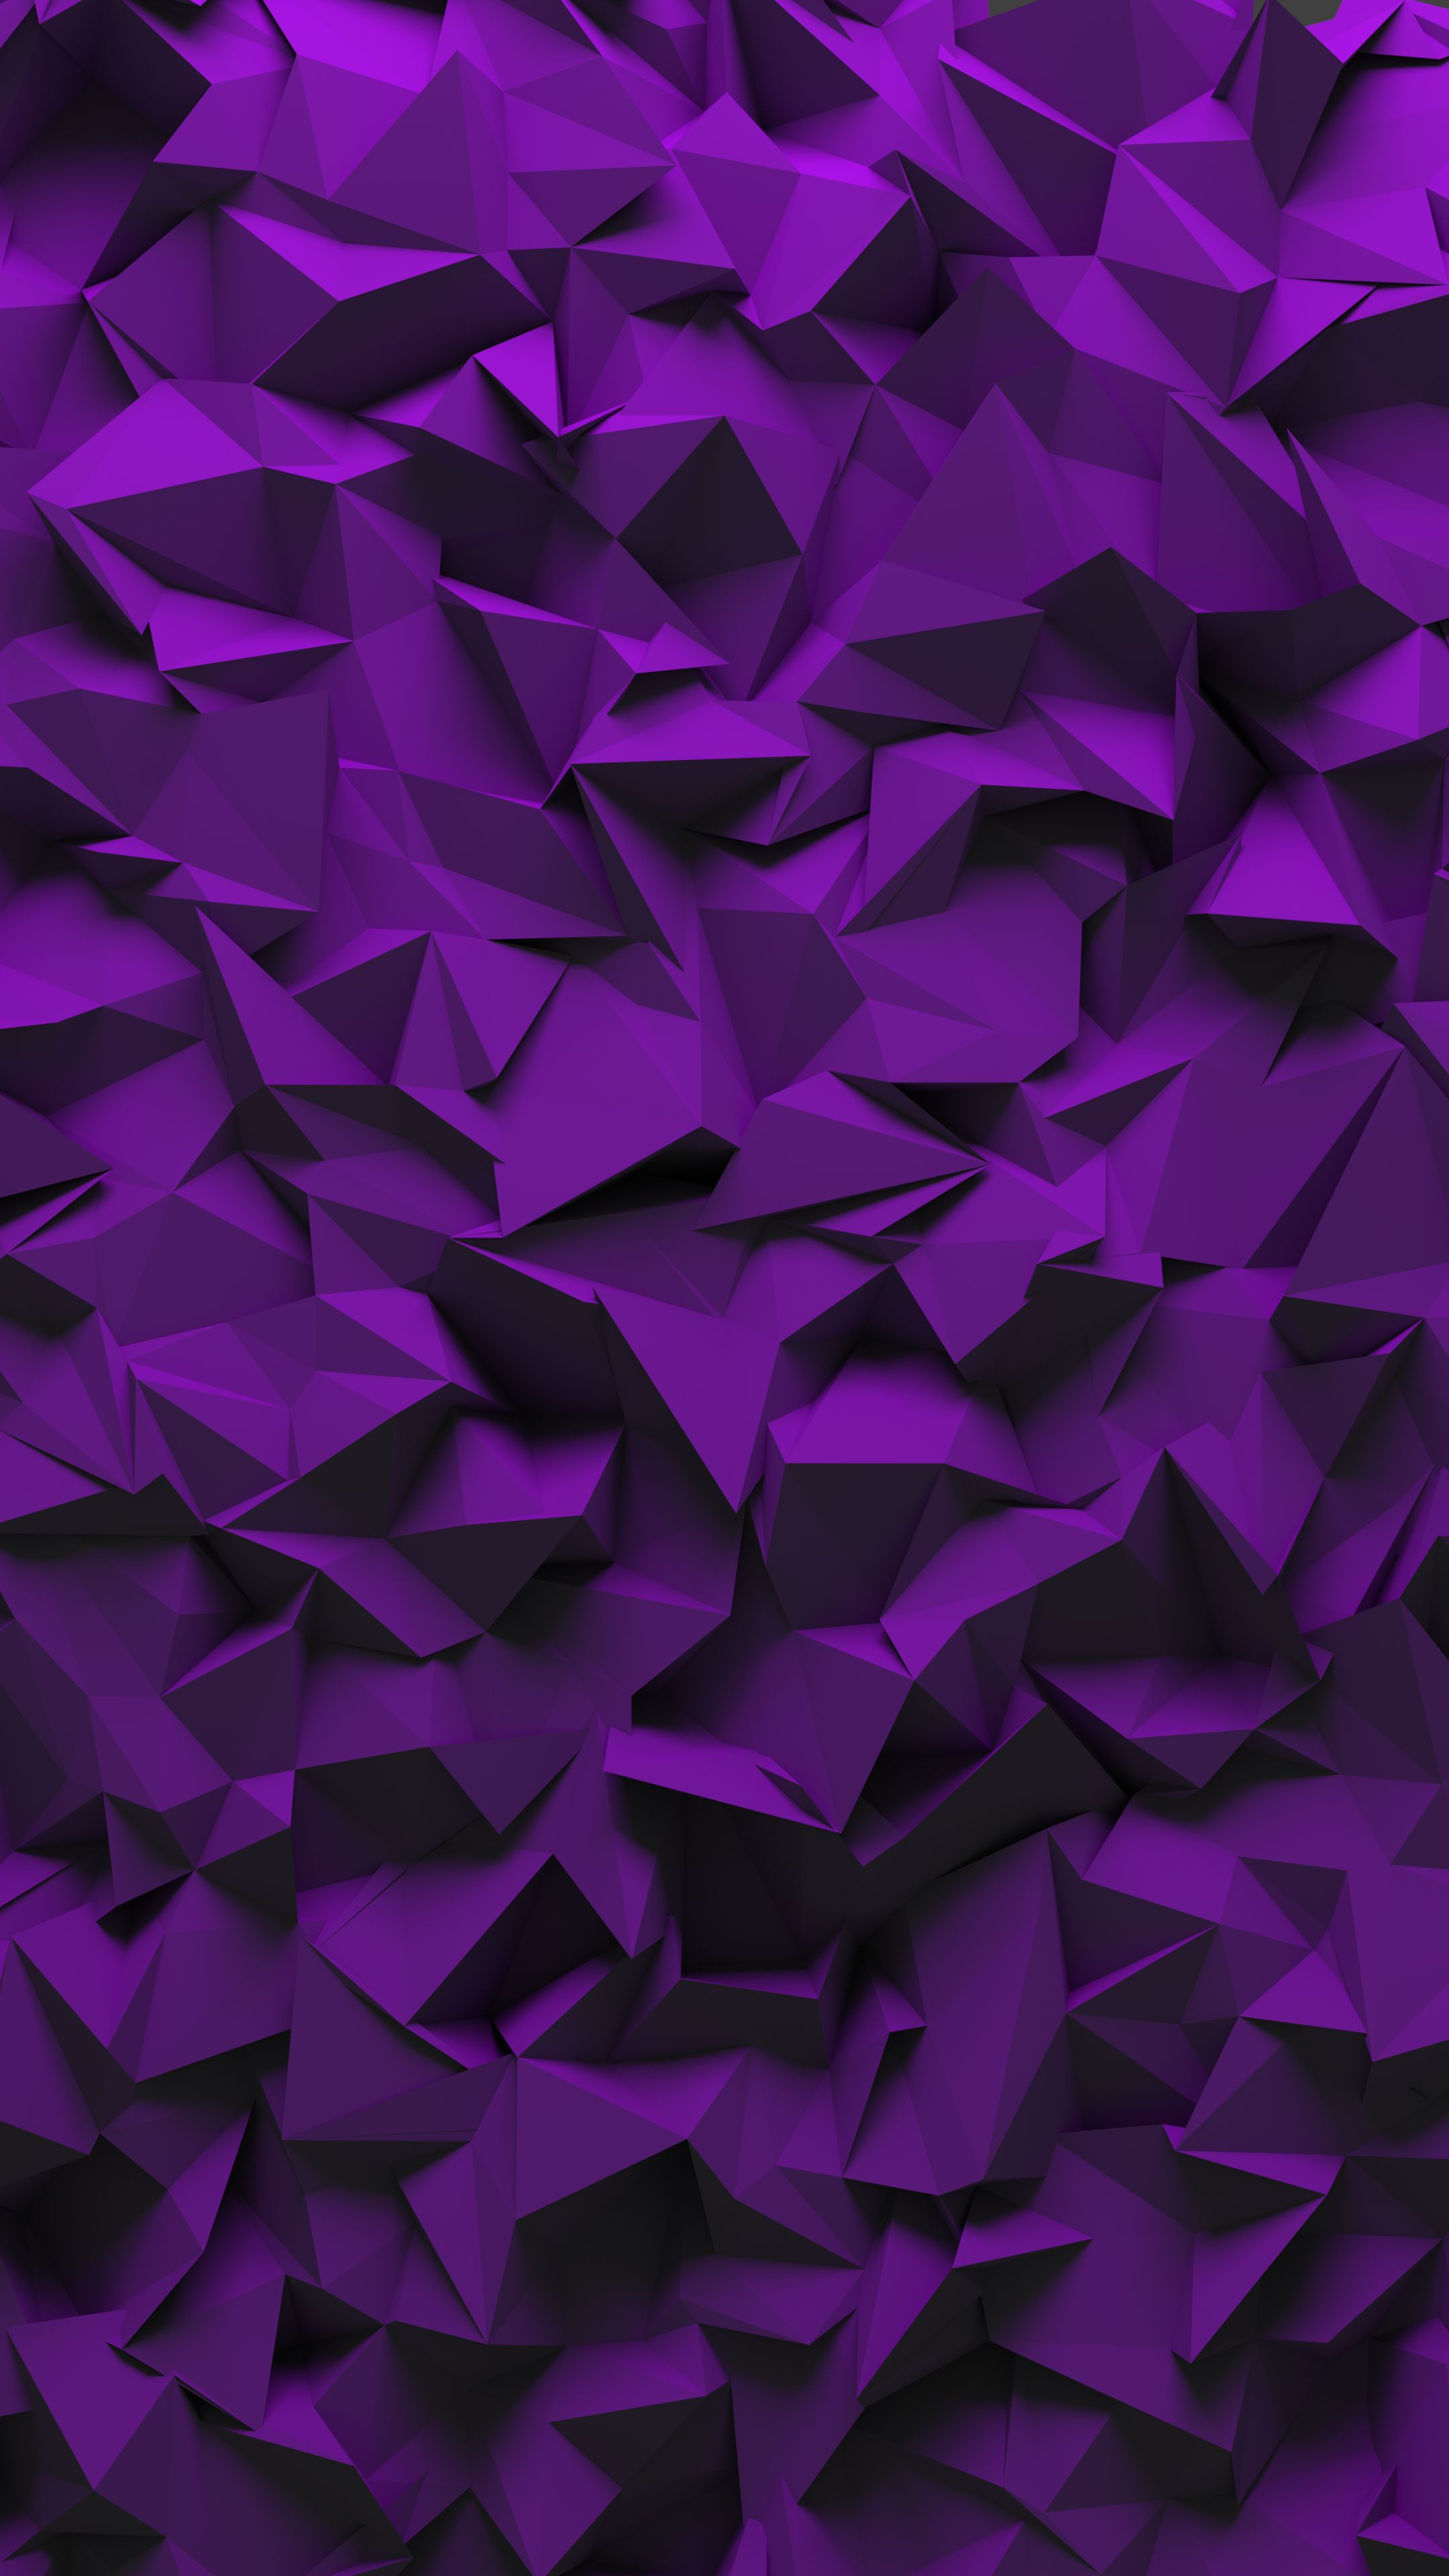 127281 download wallpaper Textures, Texture, Fragments, Triangles, Volume, Purple, Violet screensavers and pictures for free